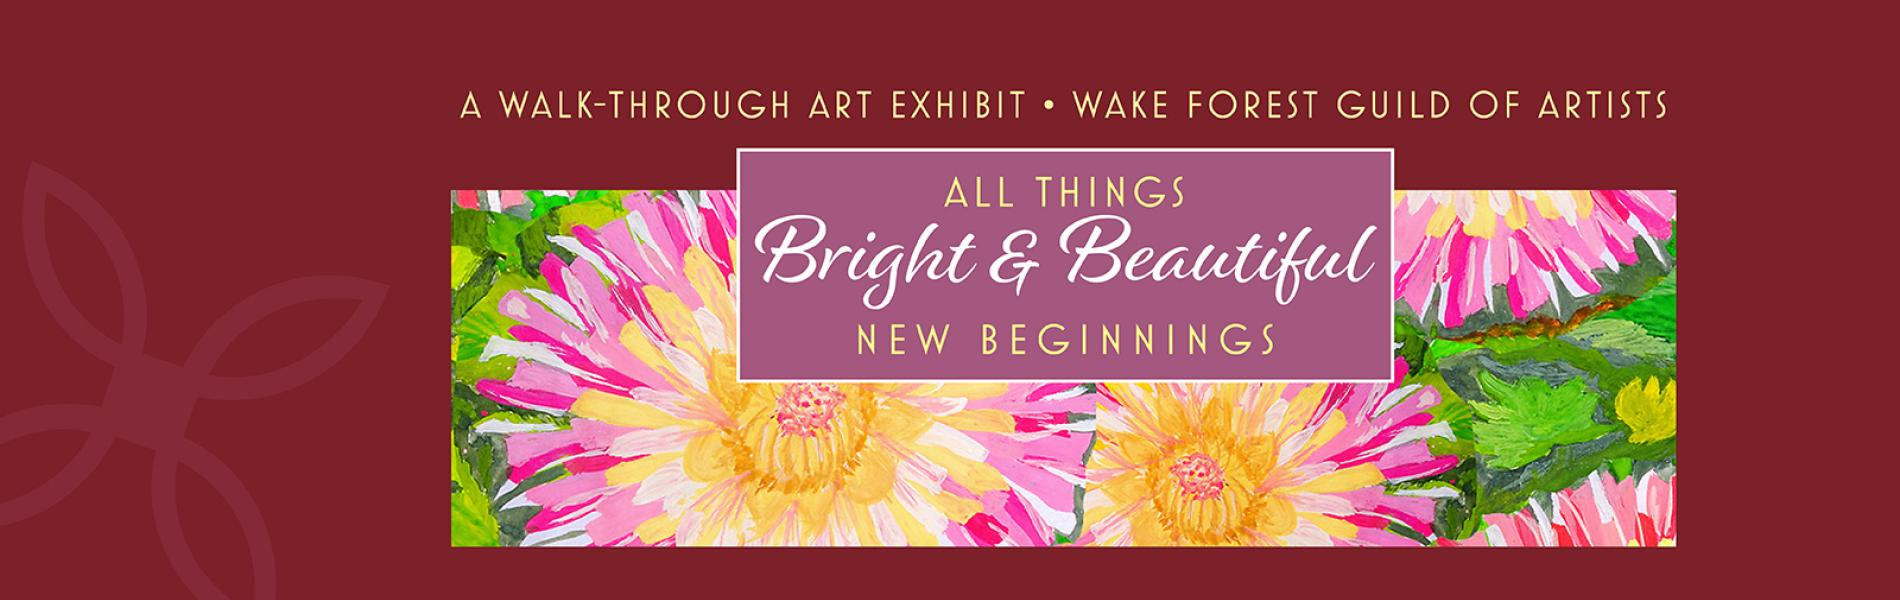 All Things Bright & Beautiful New Beginnings